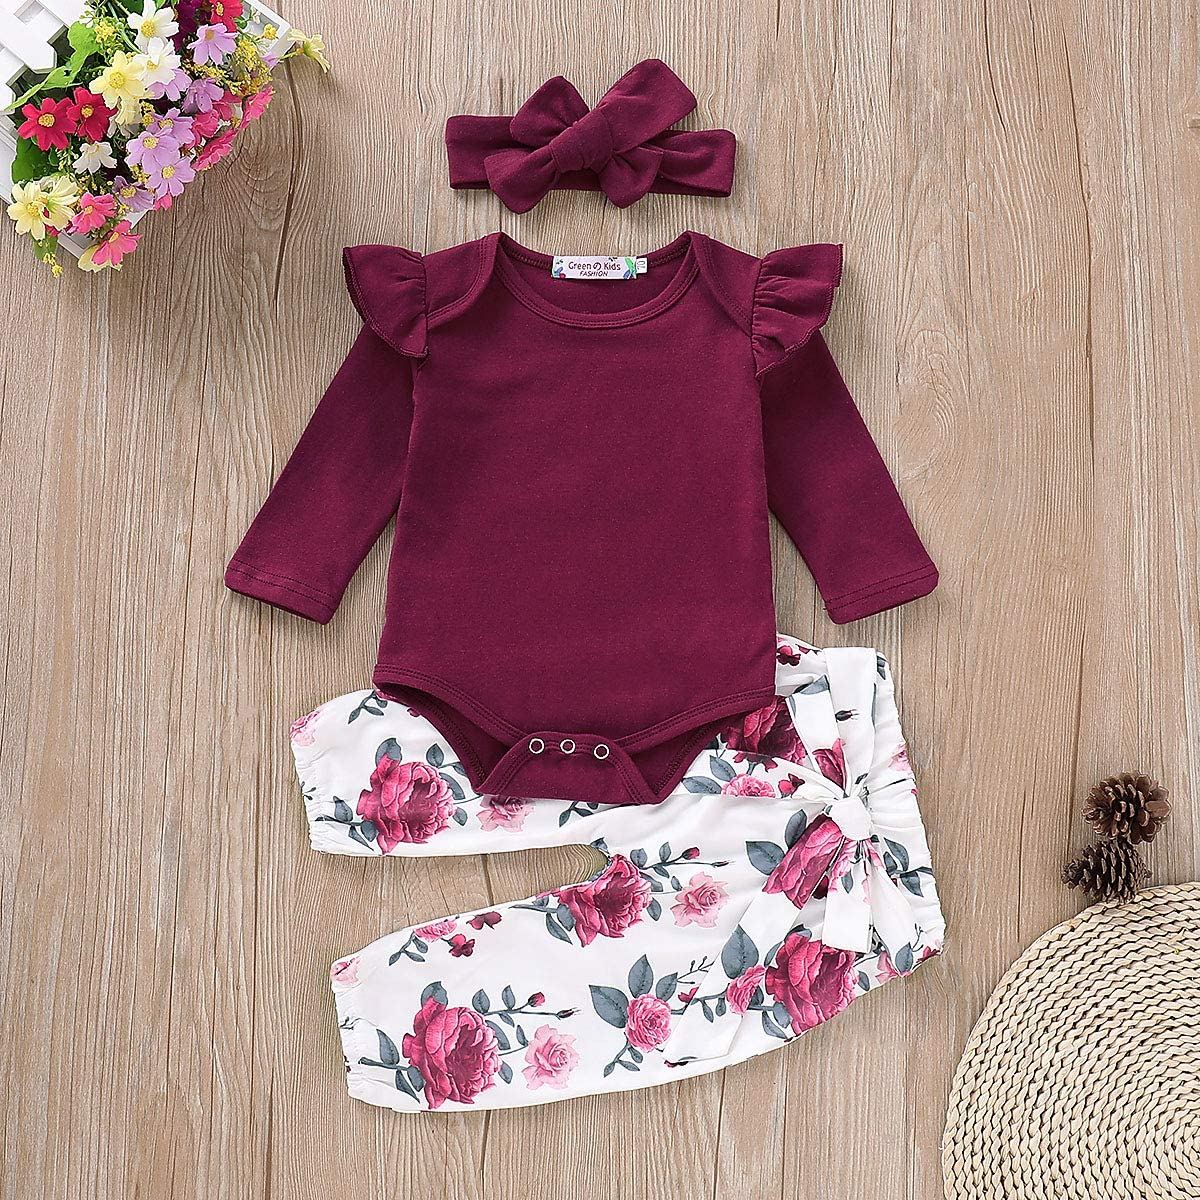 Toddler Kid Baby Girl Clothes Ruffle Sleeve Floral Romper Headband Summer Outfit